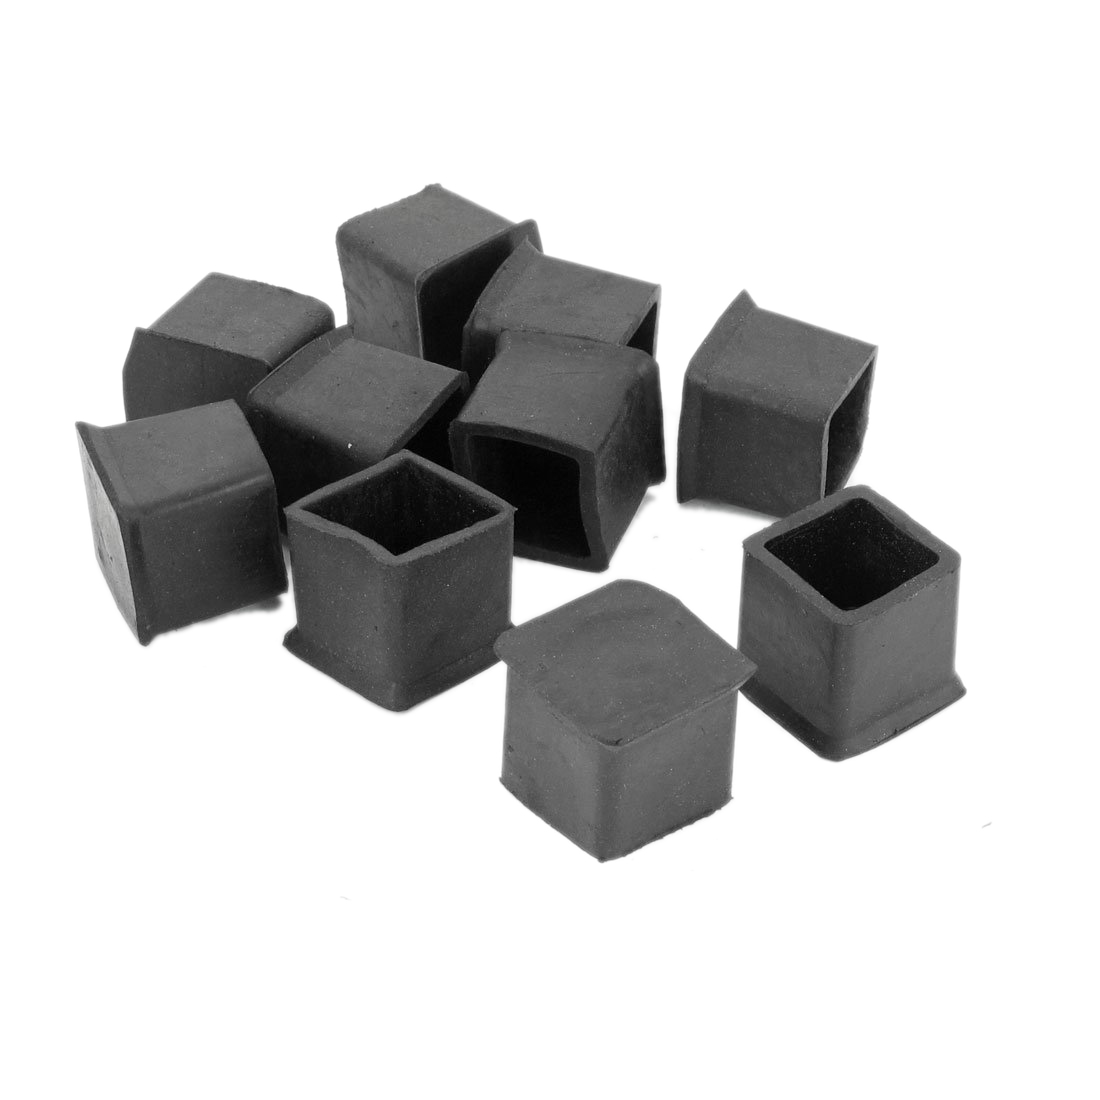 caps for chair legs meditation with back support 10 pcs rubber 25mm x furniture covers